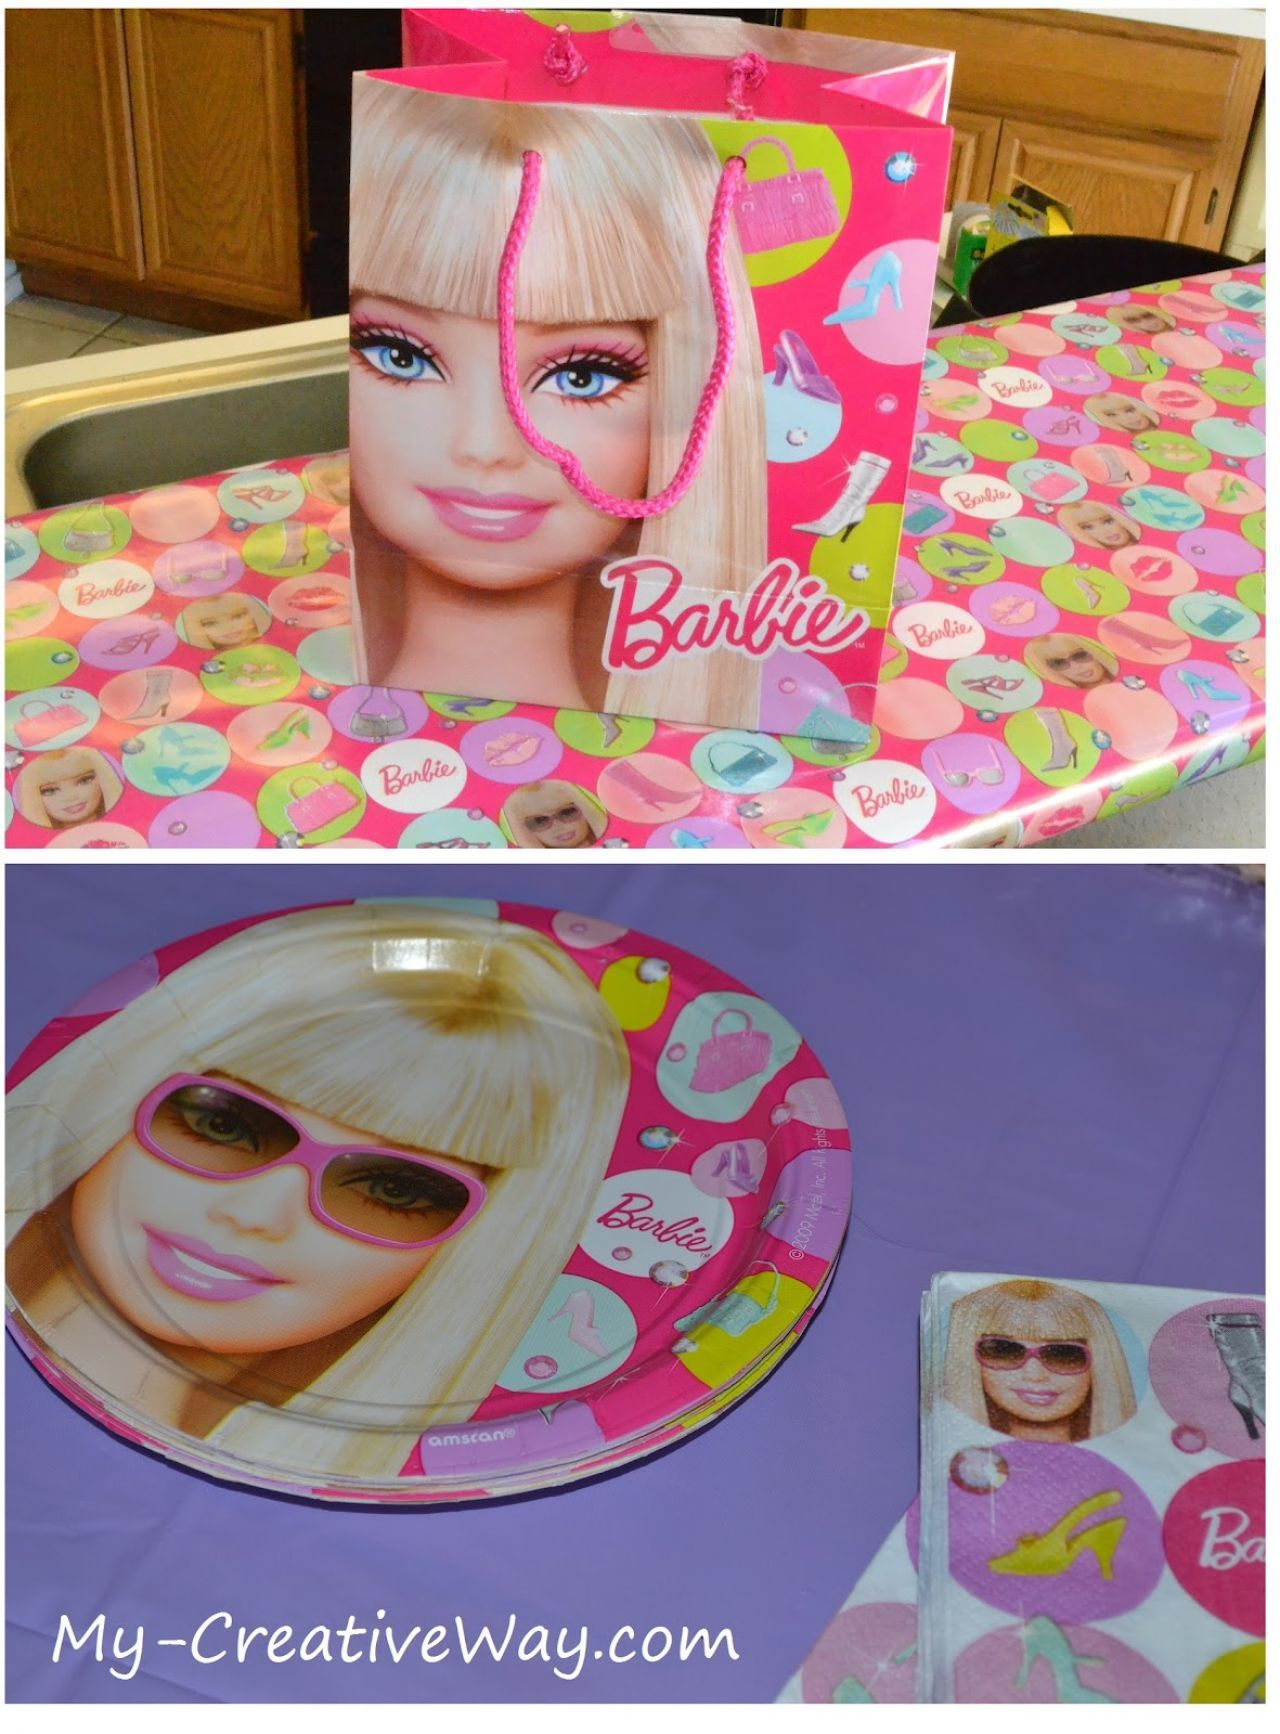 Barbie 18Th Birthday Invitation - Invitation Card Design